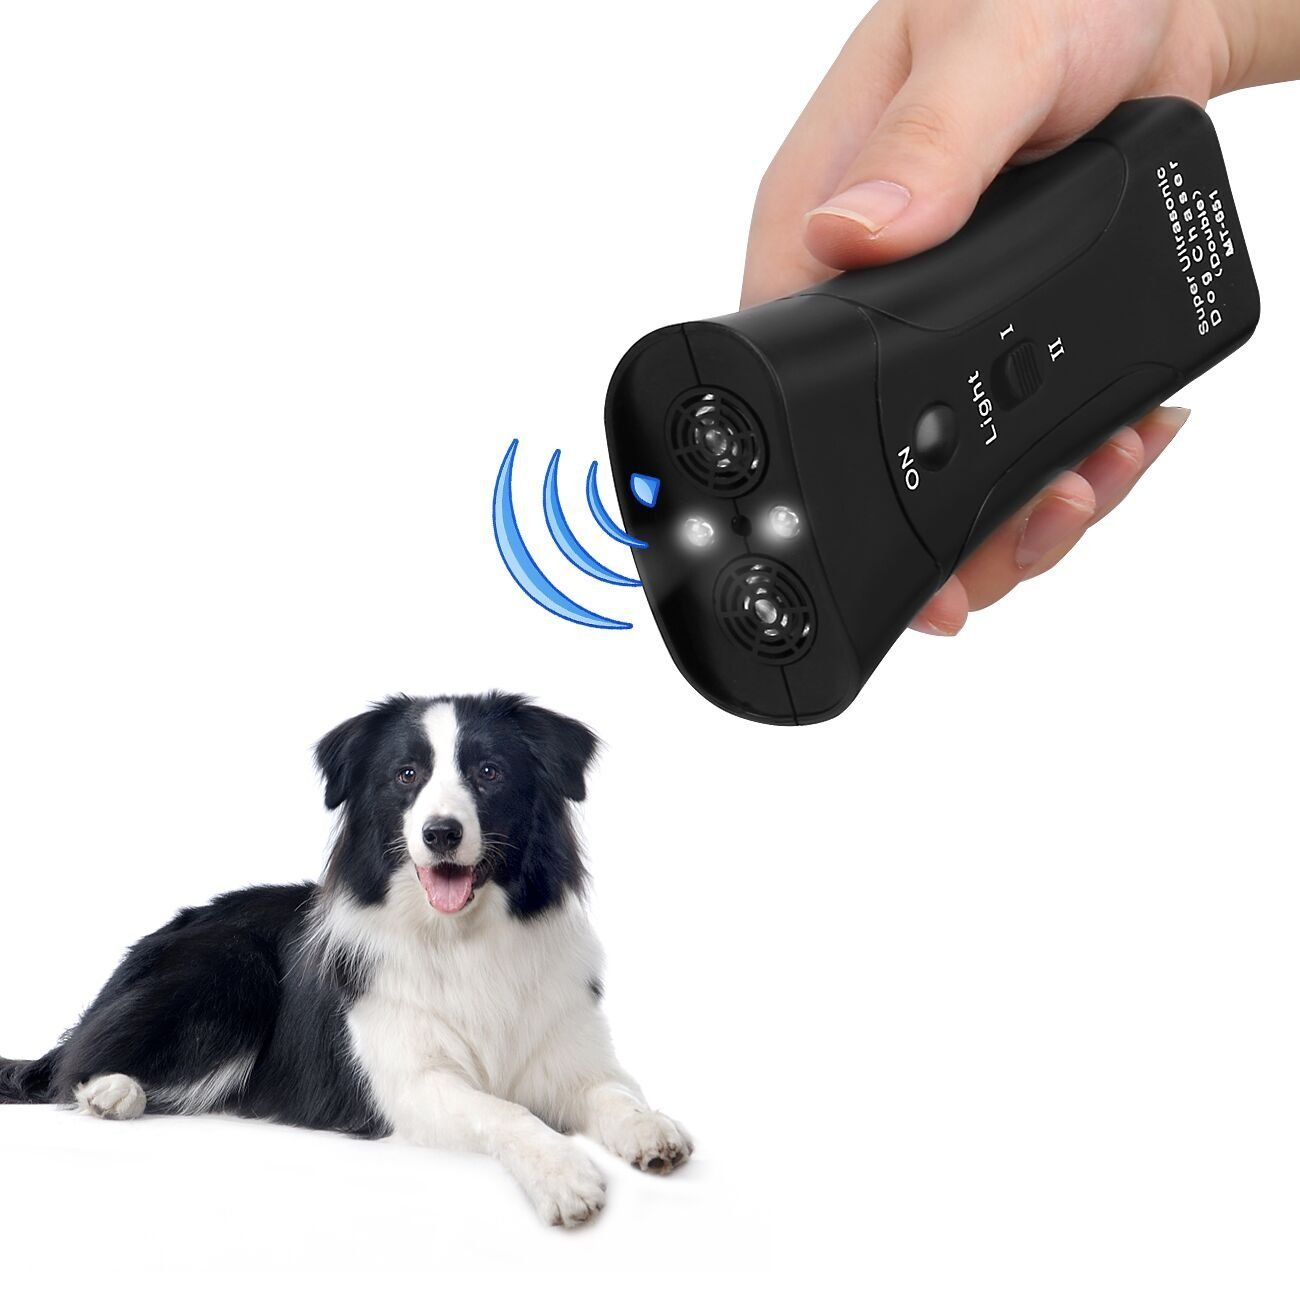 instecho Dog Repellent, Dr.fasting Portable Electronic Dog Trainer with Bright LED Flashlight, Waterproof Repellent for Dog